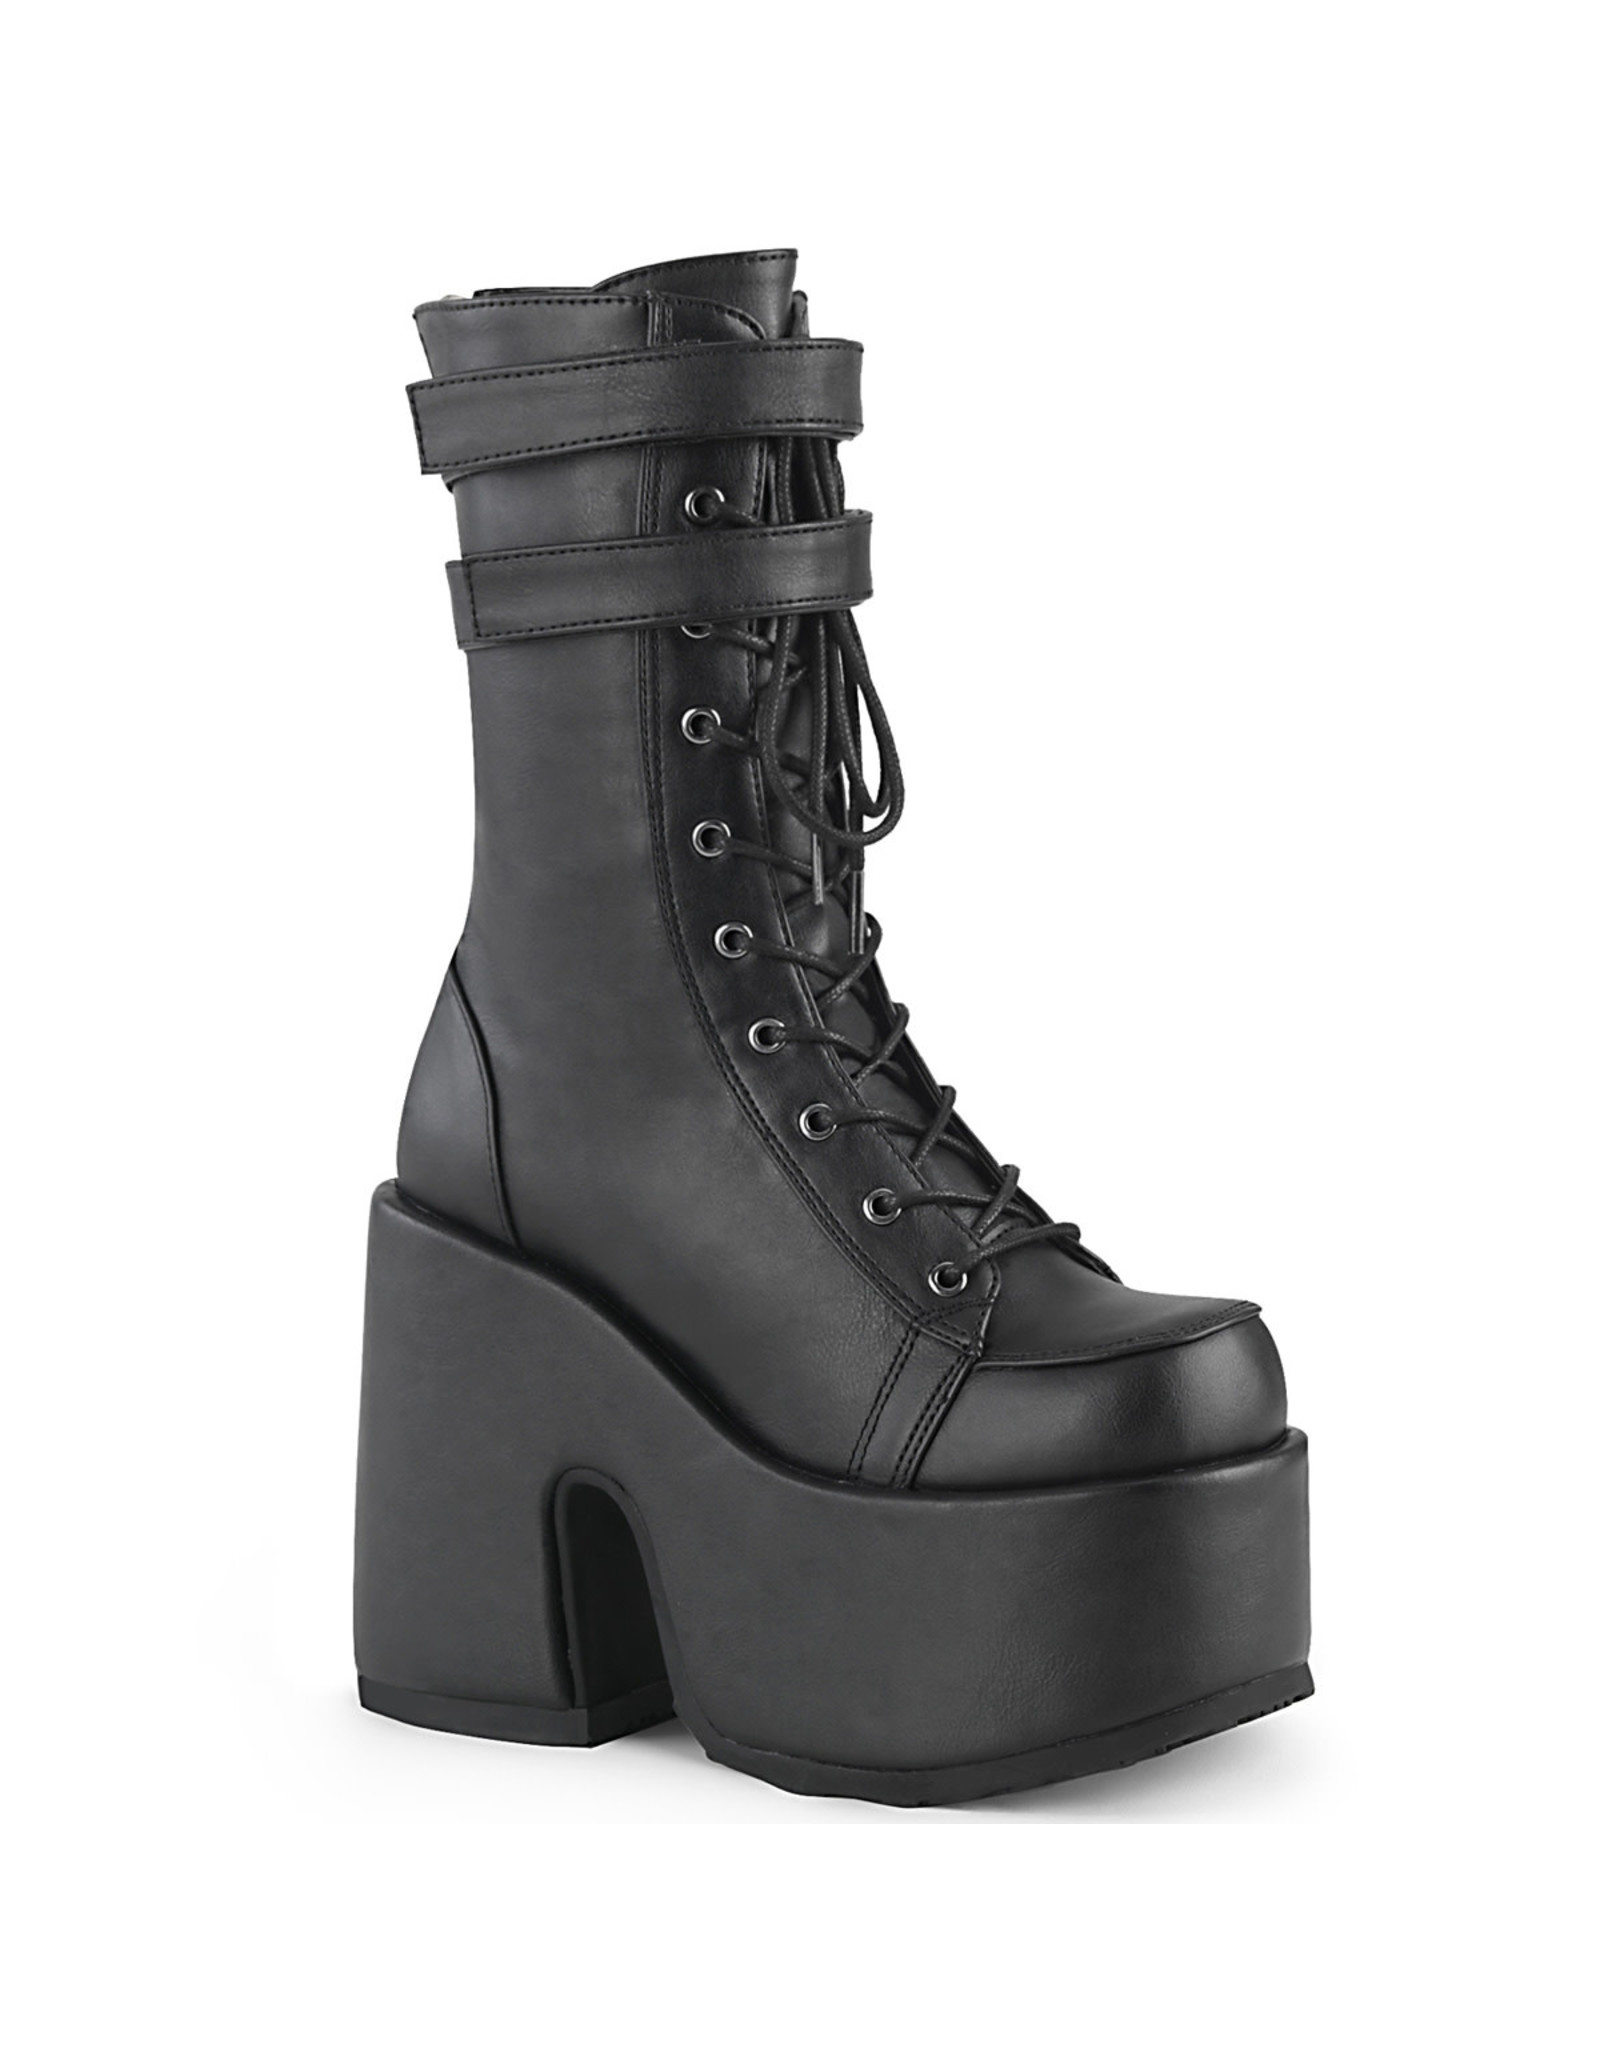 "DEMONIA CAMEL-250 5"" Chunky Heel, 3"" P/F Black Vegan Leather Lace-Up Mid-CalfBoot, Back Zip D47VB"